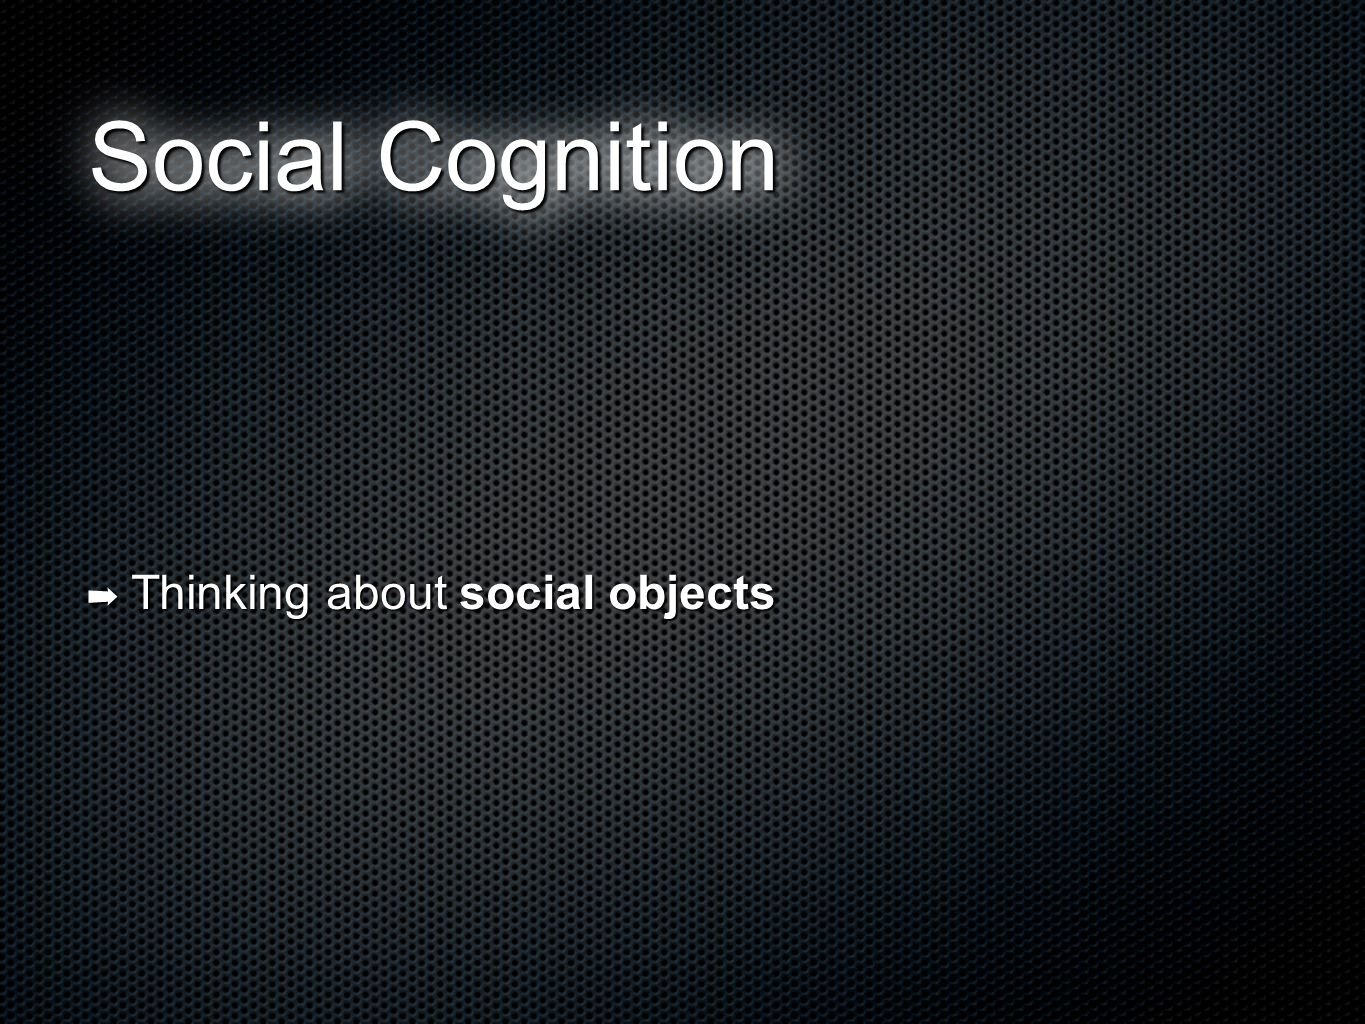 Social Object ➡ A physical object that has the ability to engage in social cognition